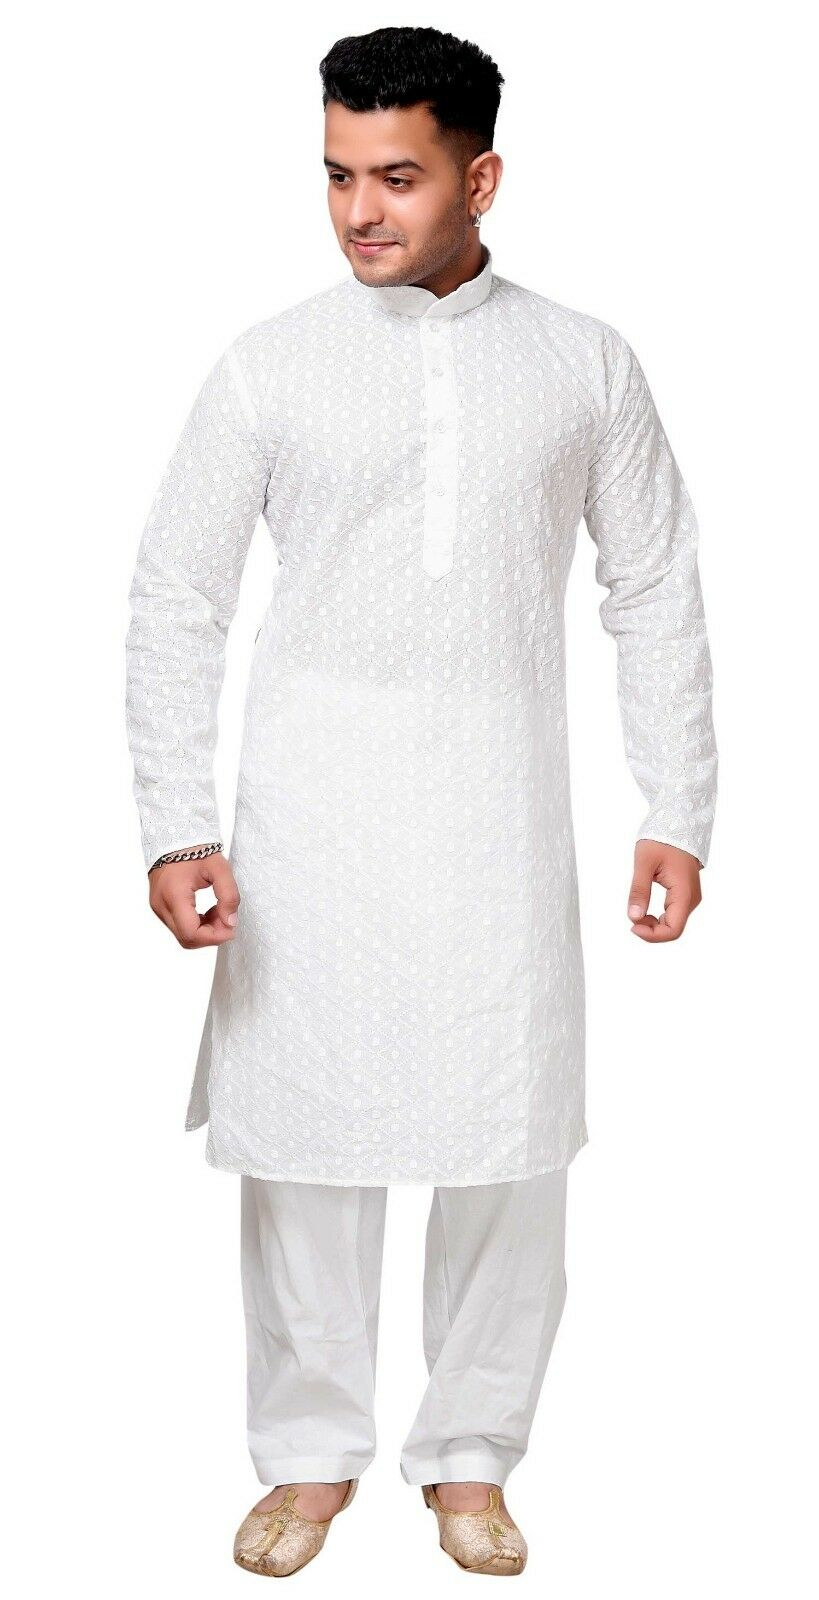 Men White indian kurta pyjama shalwar kameez in Cotton Causal Asian wear